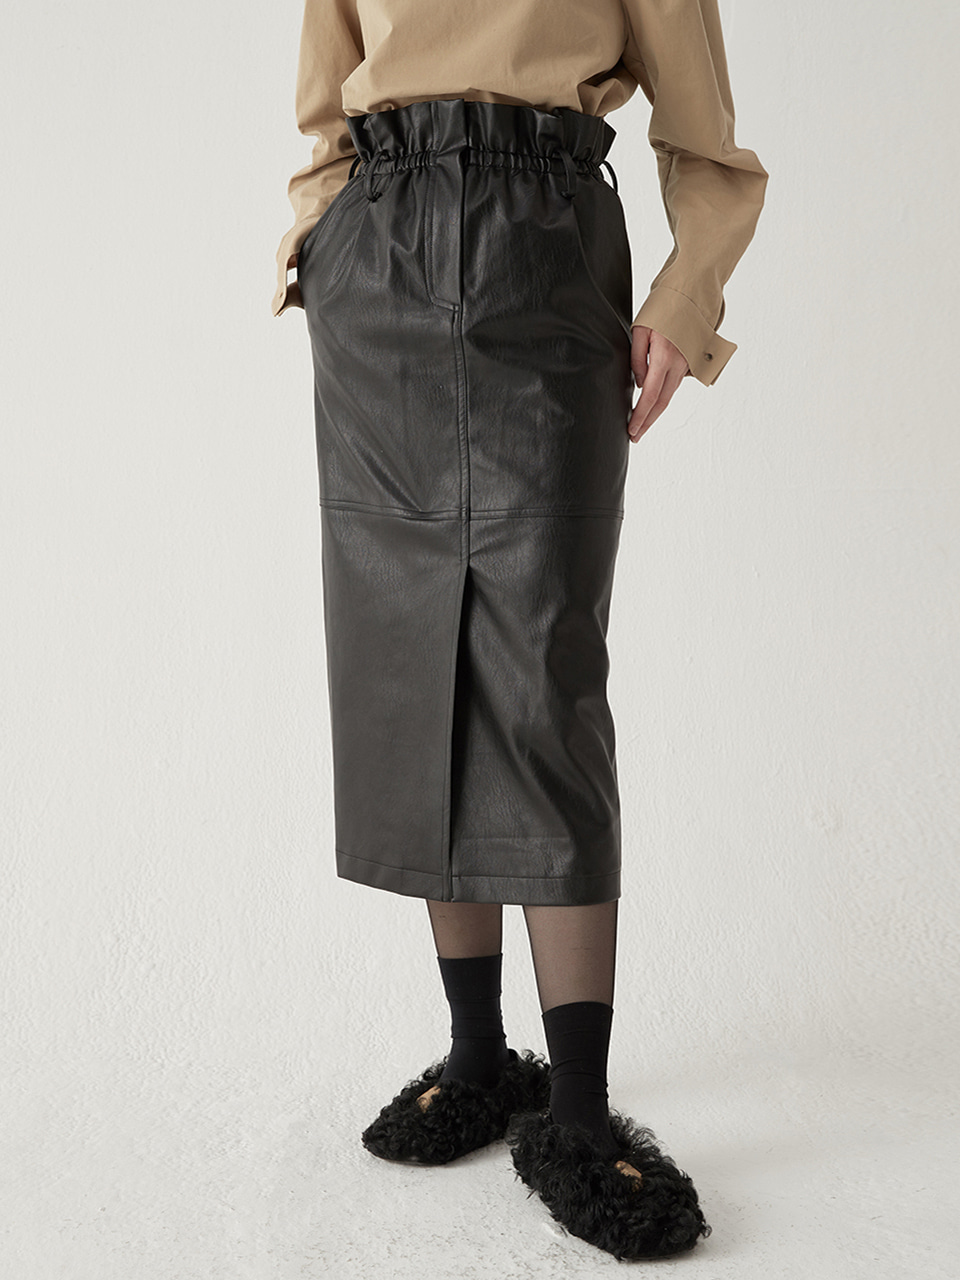 High waist leather skirt - Black